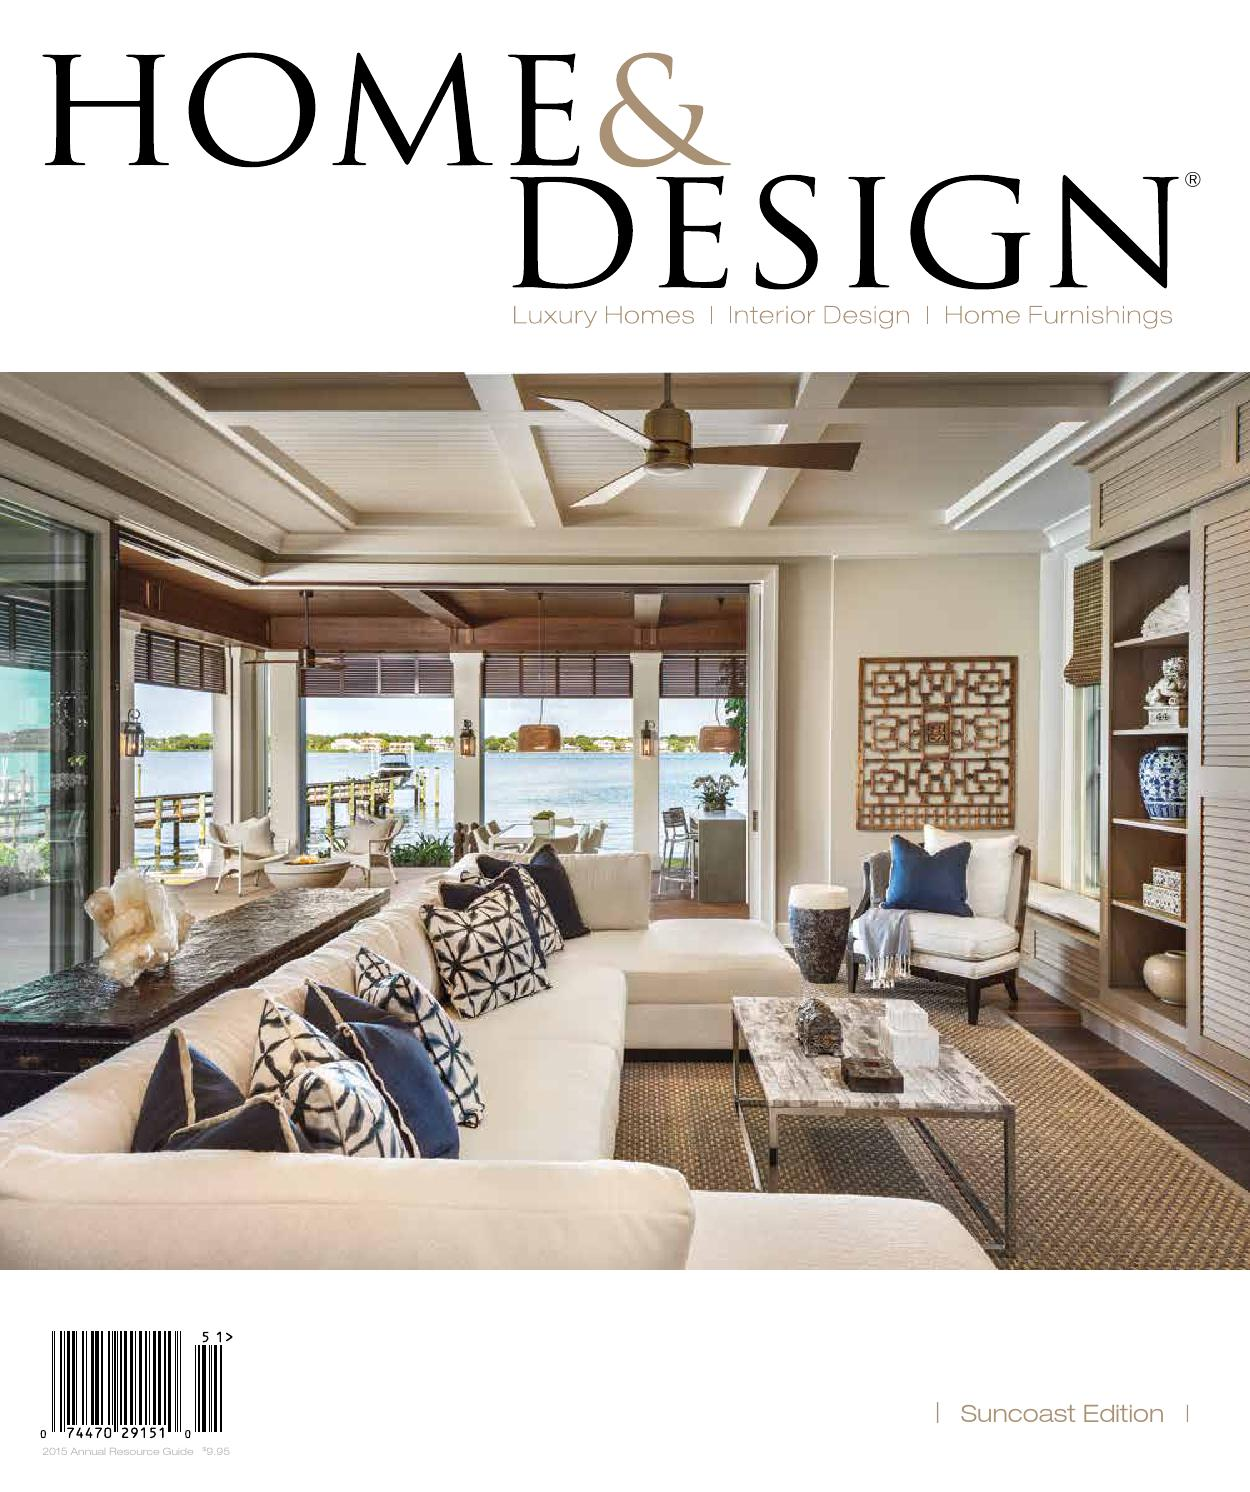 Elegant Home U0026 Design Magazine | Annual Resource Guide 2015 | Suncoast Florida  Edition By Anthony Spano   Issuu